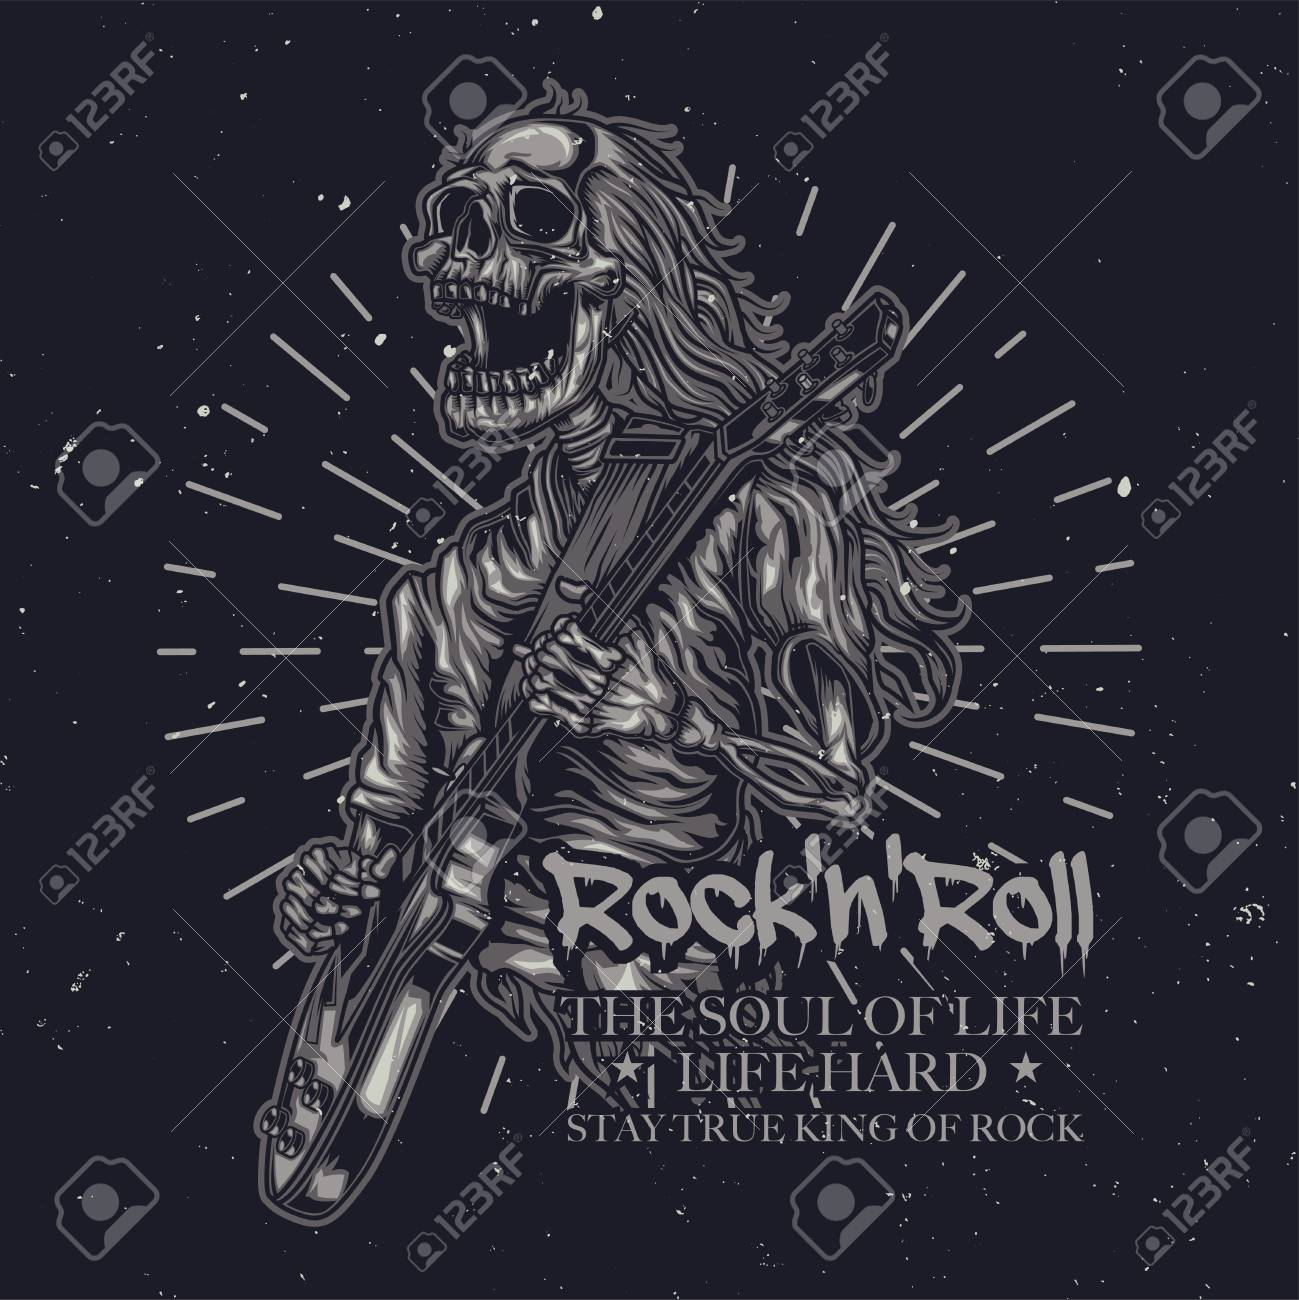 T-shirt or poster design with illustration of skeleton playing guitar - 114217581